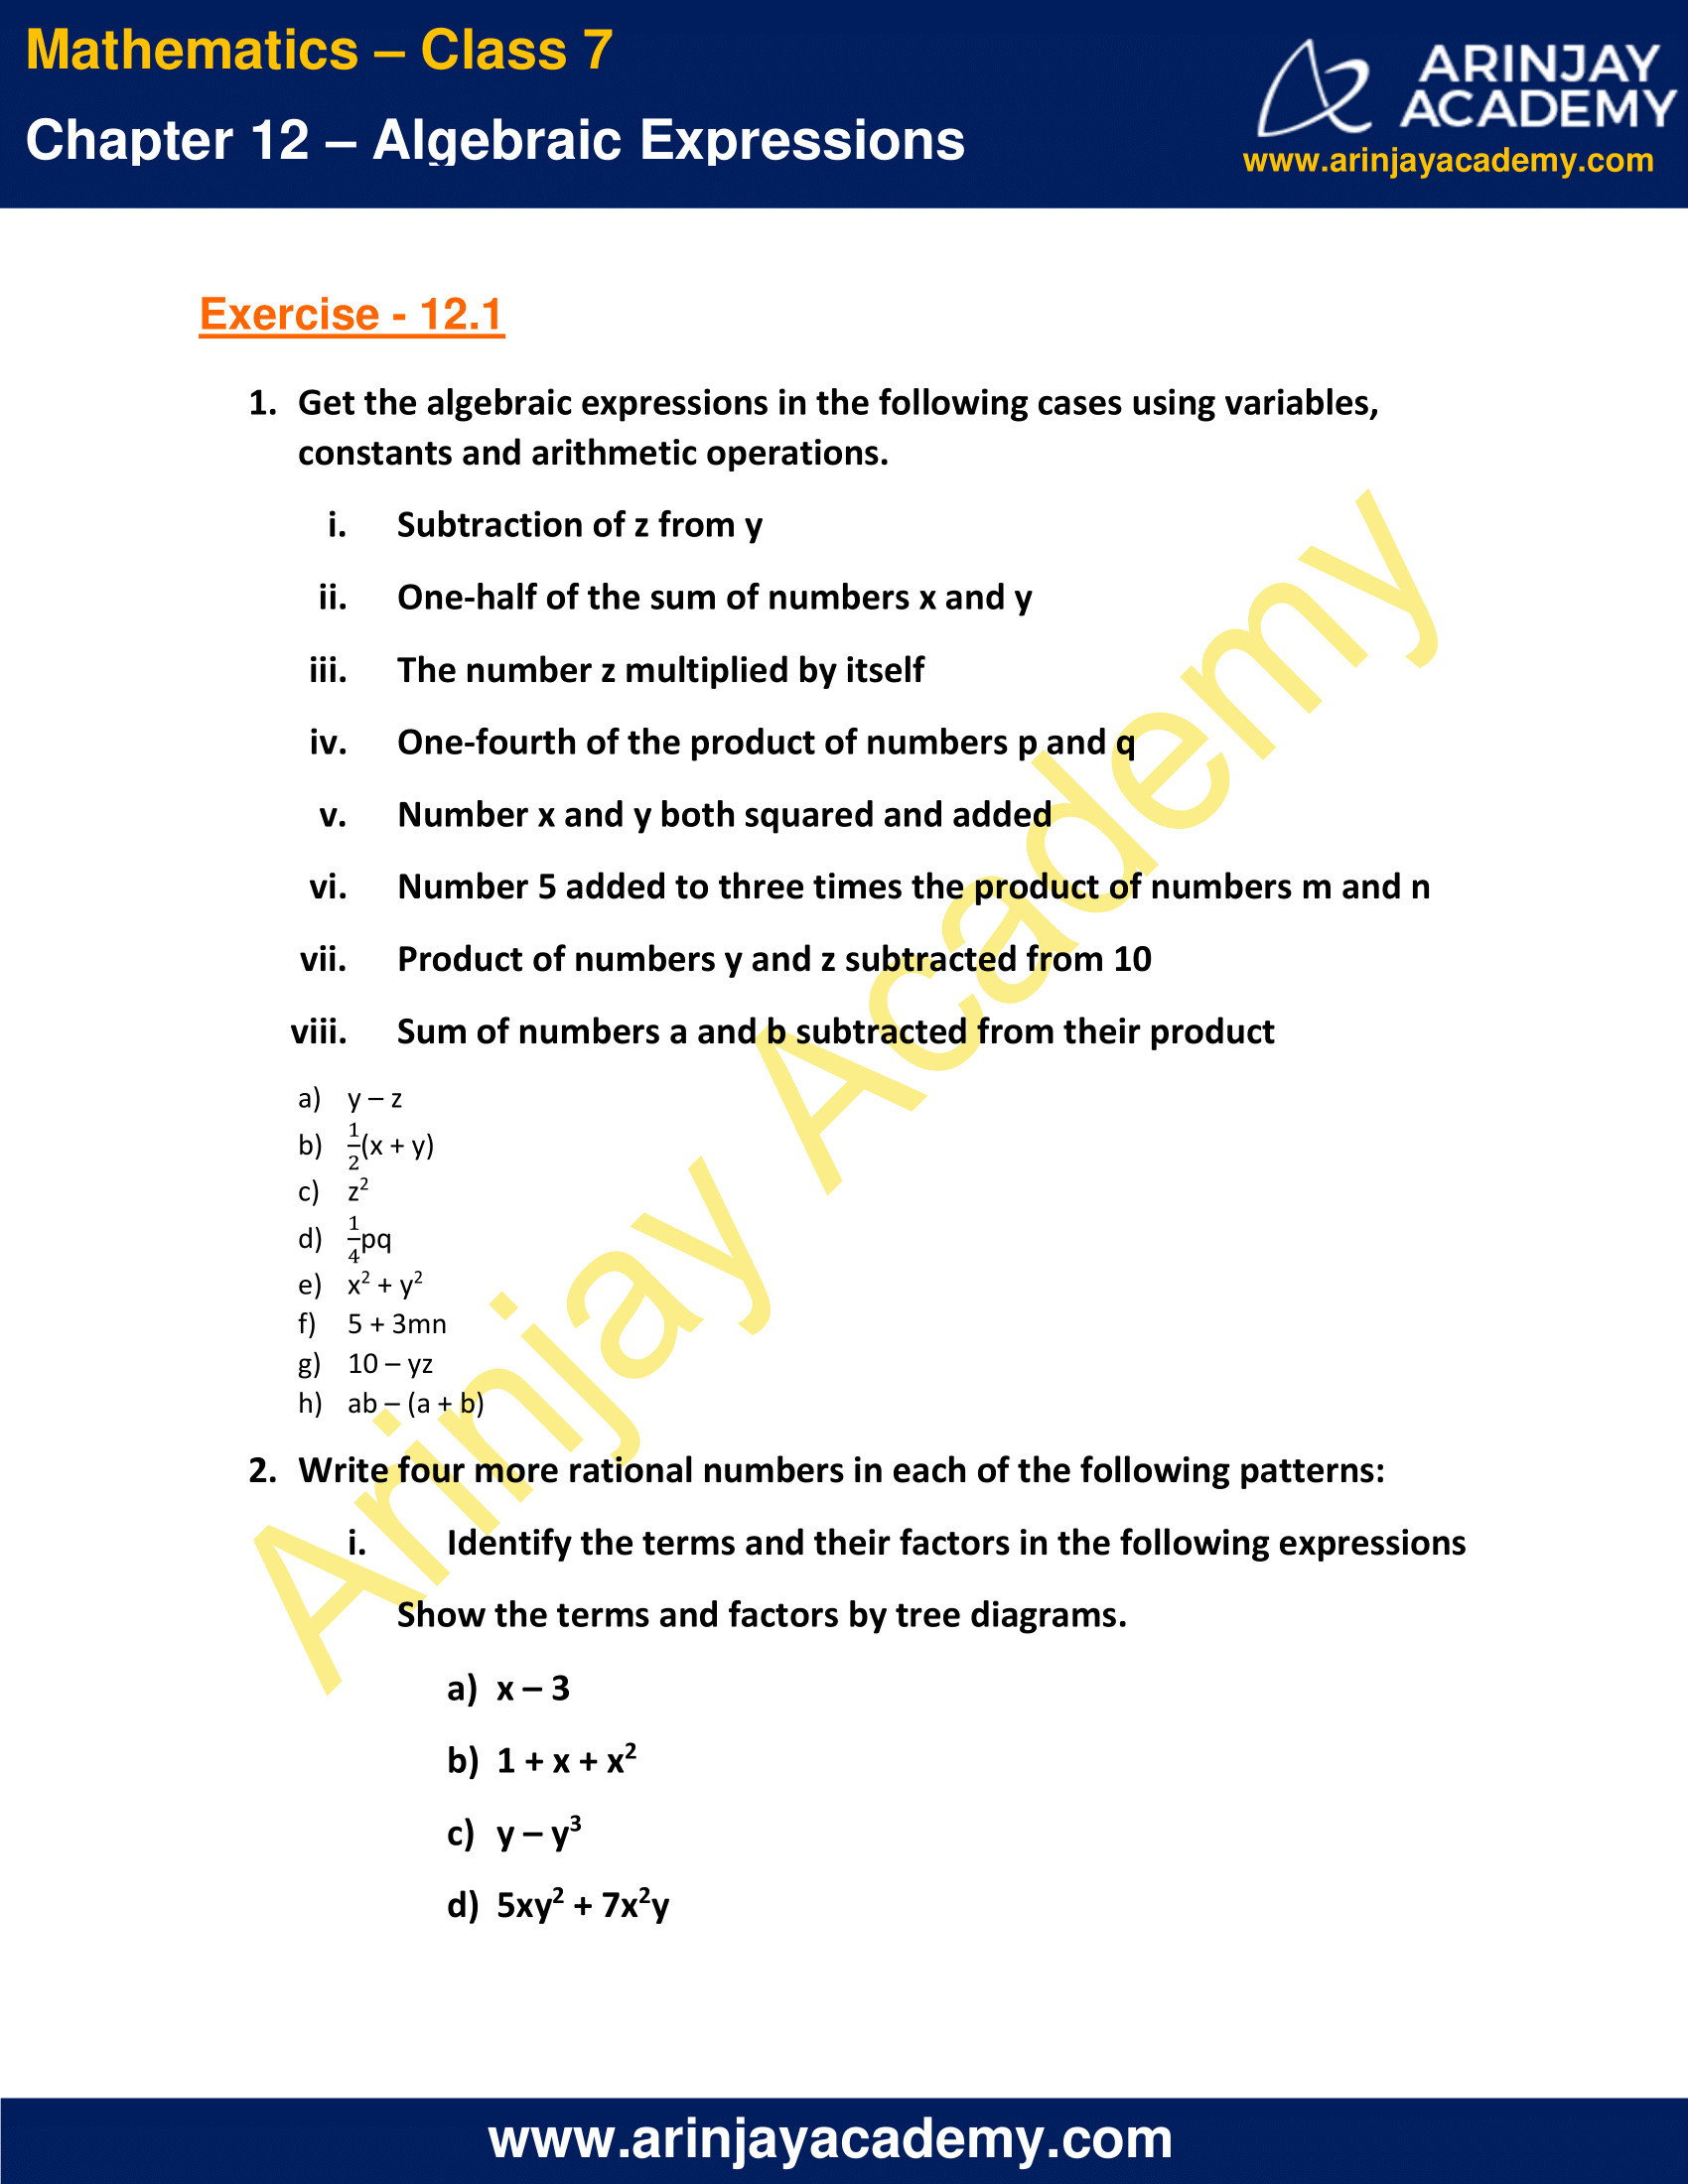 NCERT Solutions for Class 7 Maths Chapter 12 Exercise 12.1 image 1